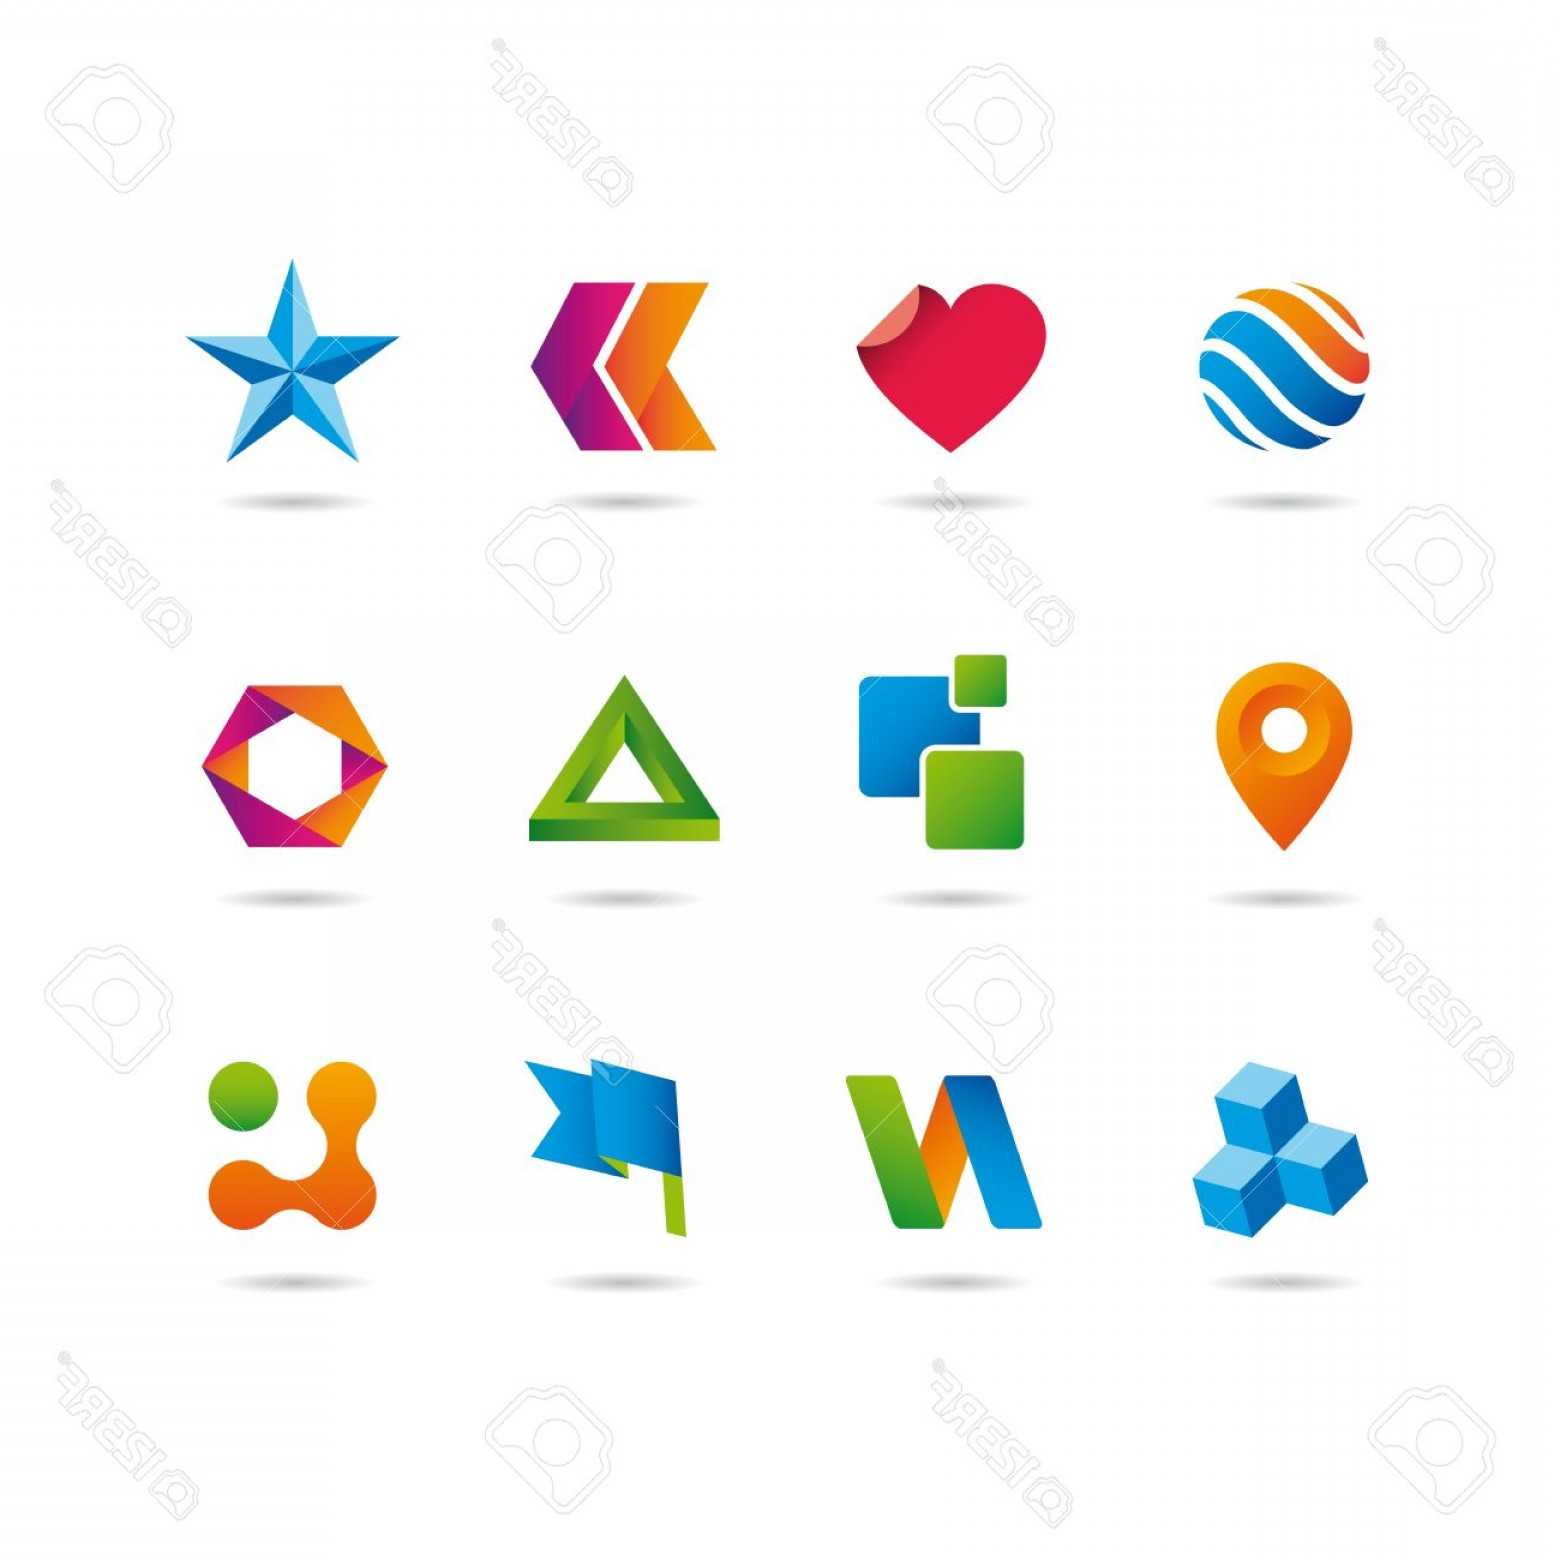 Vectors Heart And Star: Photologo And Icons Set Heart Arrows Star Sphere Cube Ribbon And Flag